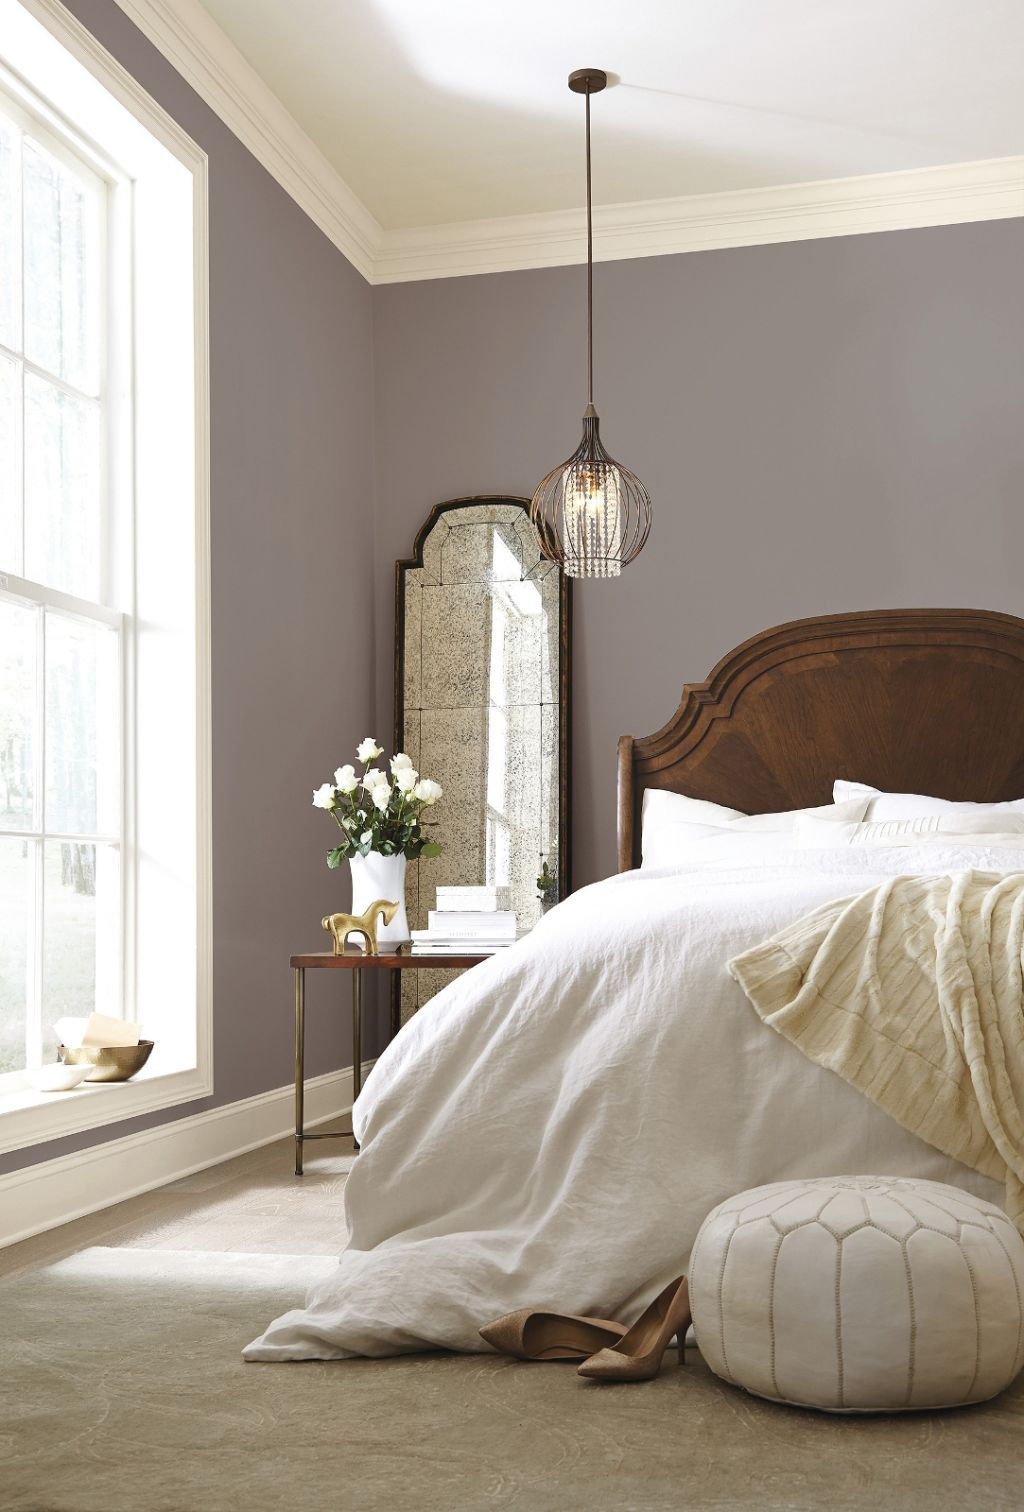 Meanwhile, if you want to use it in your bedroom, try to stick with light- colored floors and bedding so the hue doesn't transform your nighttime  escape into ...